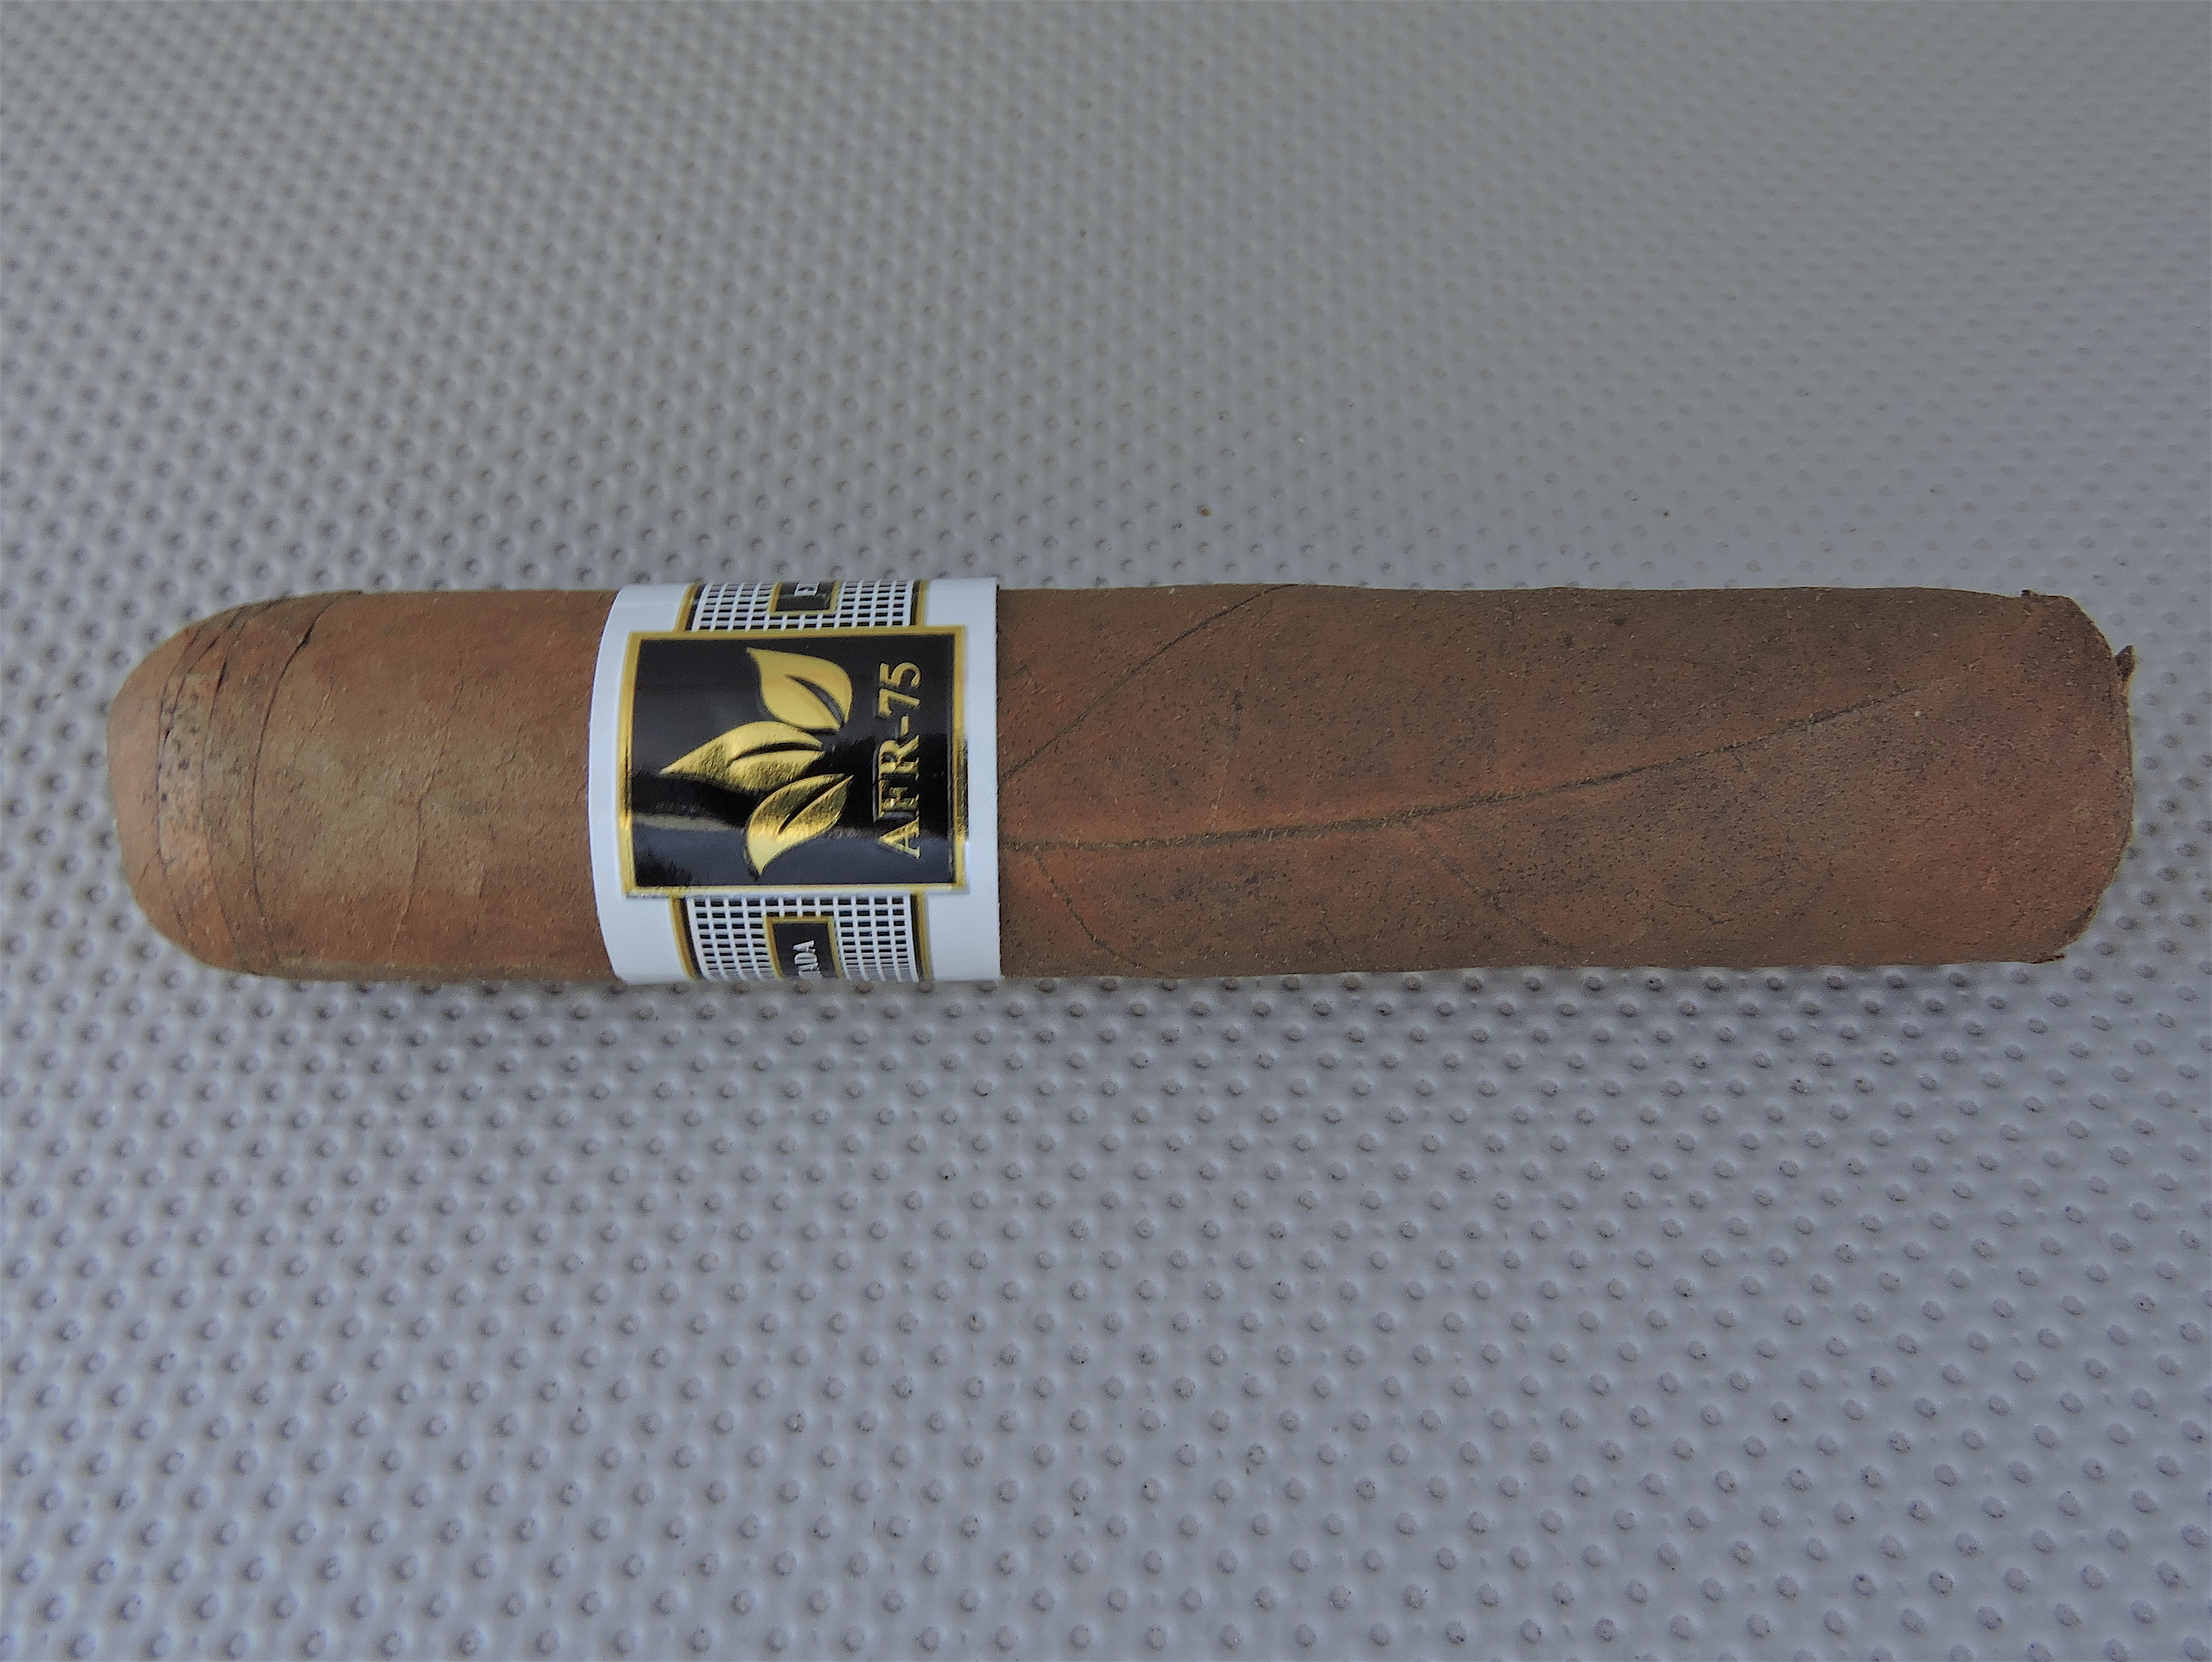 AFR-75 Claro Catador by PDR Cigars